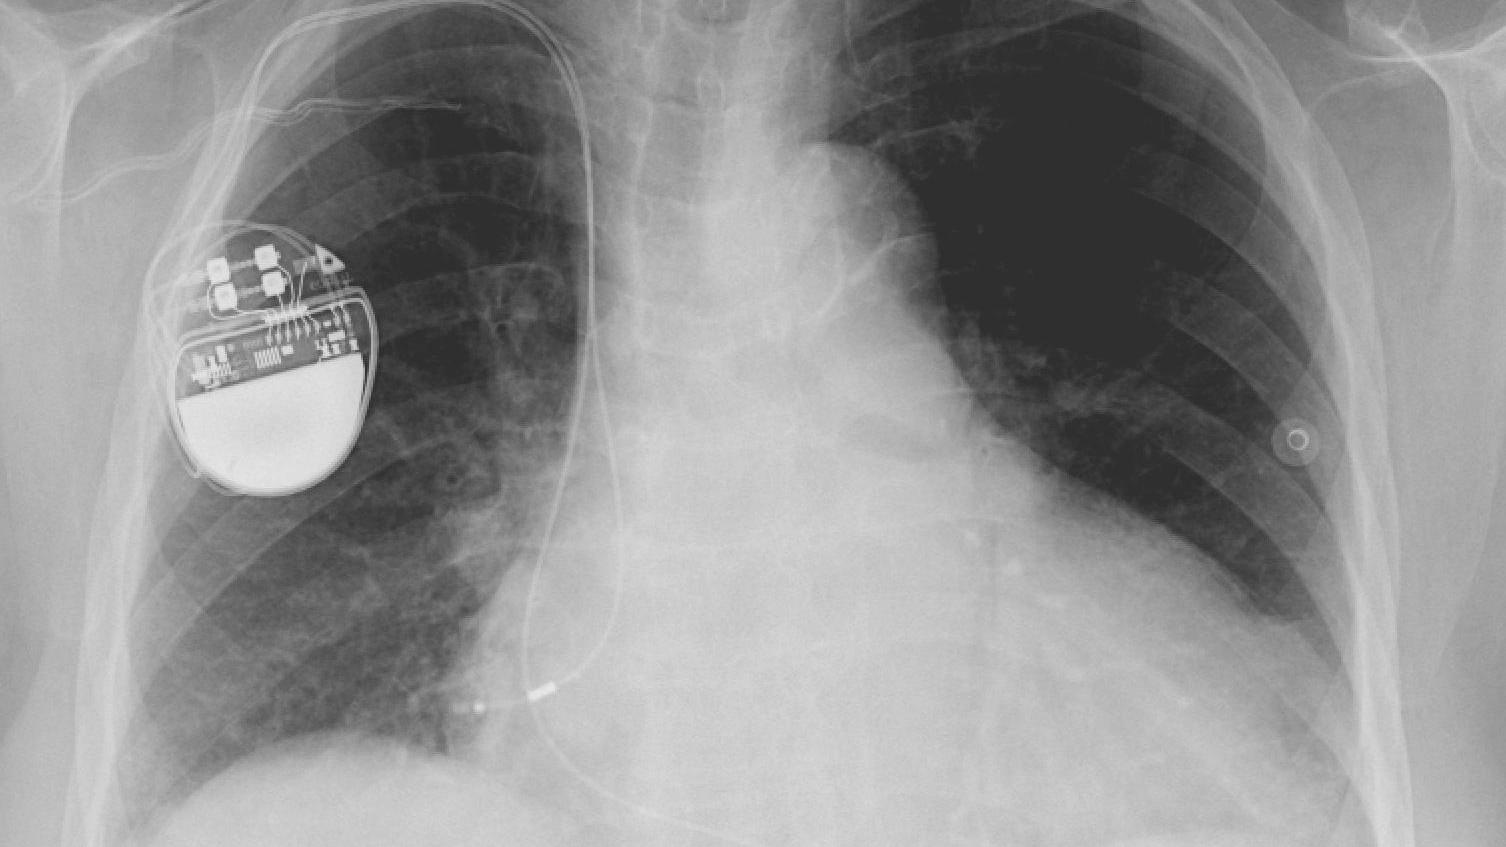 X-ray of the thorax with a pacemaker in situ (credit: Lucien Monfils via Wikimedia)